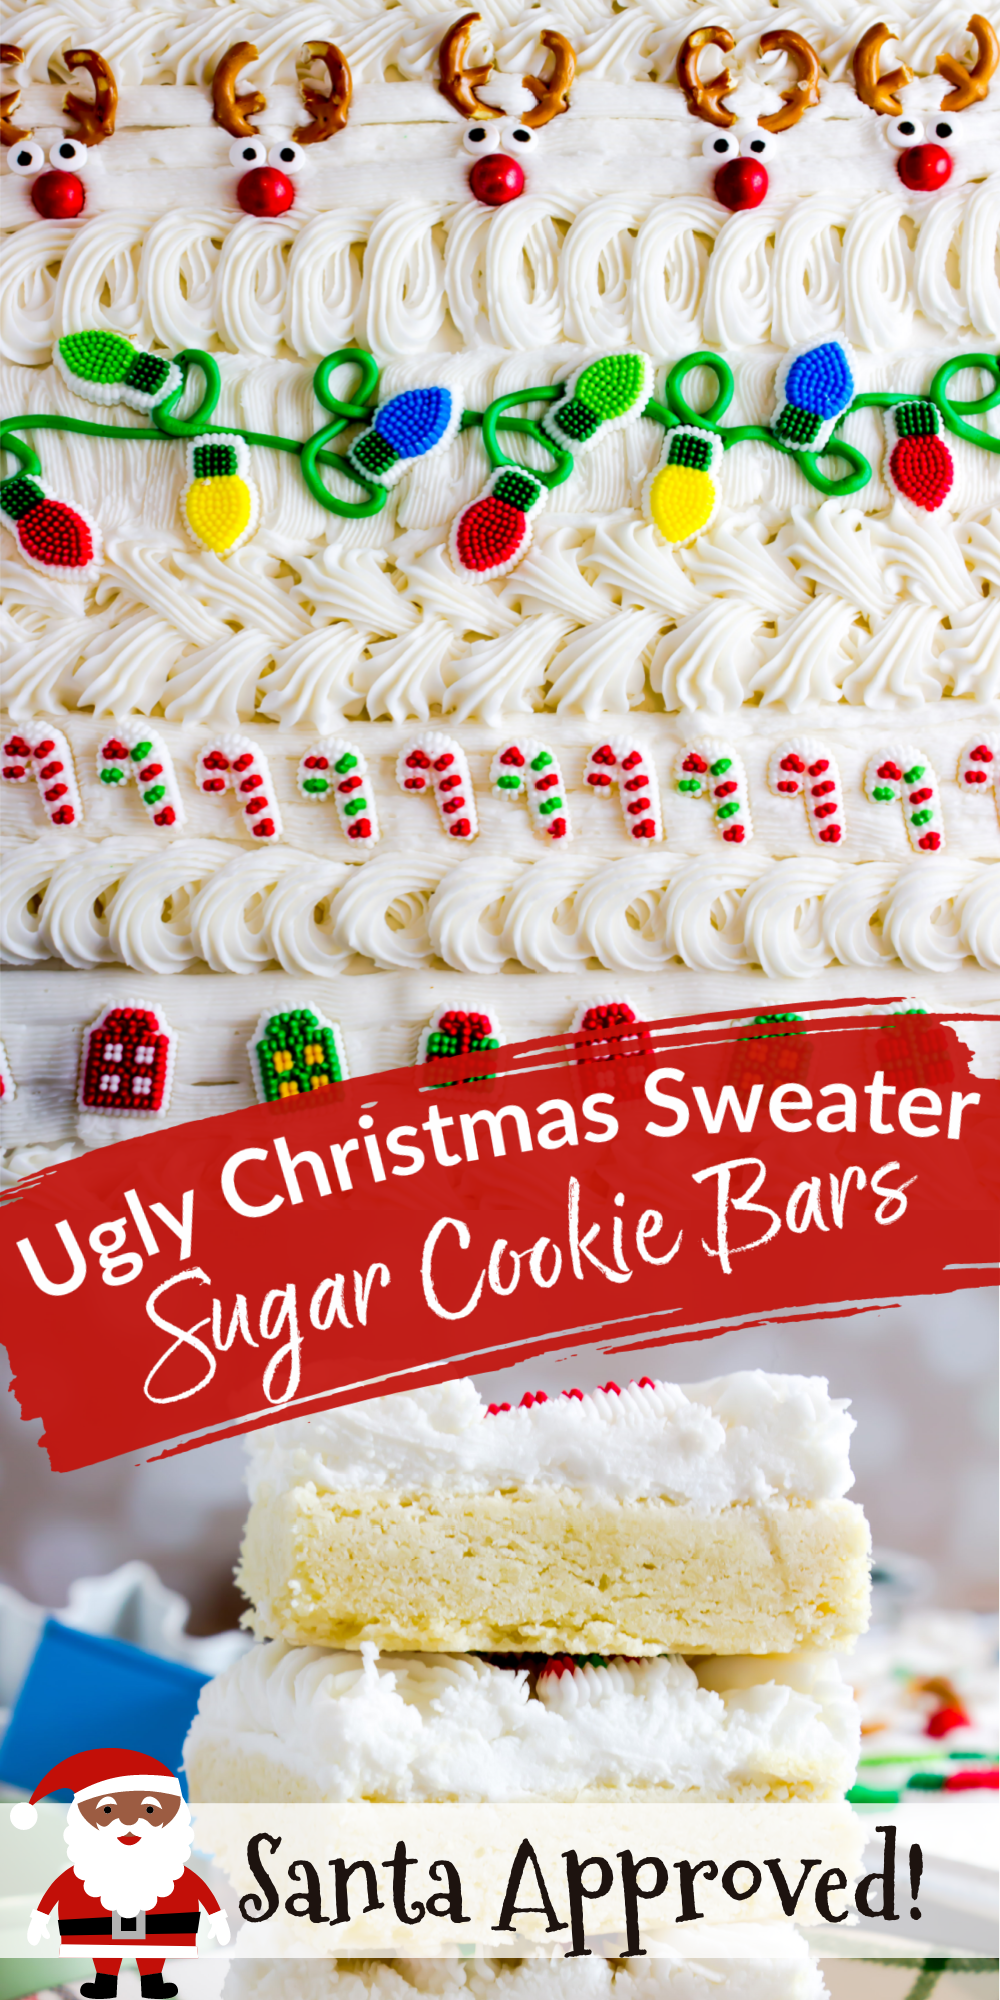 Santa approved! These Ugly Christmas Sweater Sugar Cookie Bars are quick and easy! Cut out sugar cookies take too long to decorate. Serve these cookie bars at holiday parties. Print and Pin the recipe at In Katrina's Kitchen.